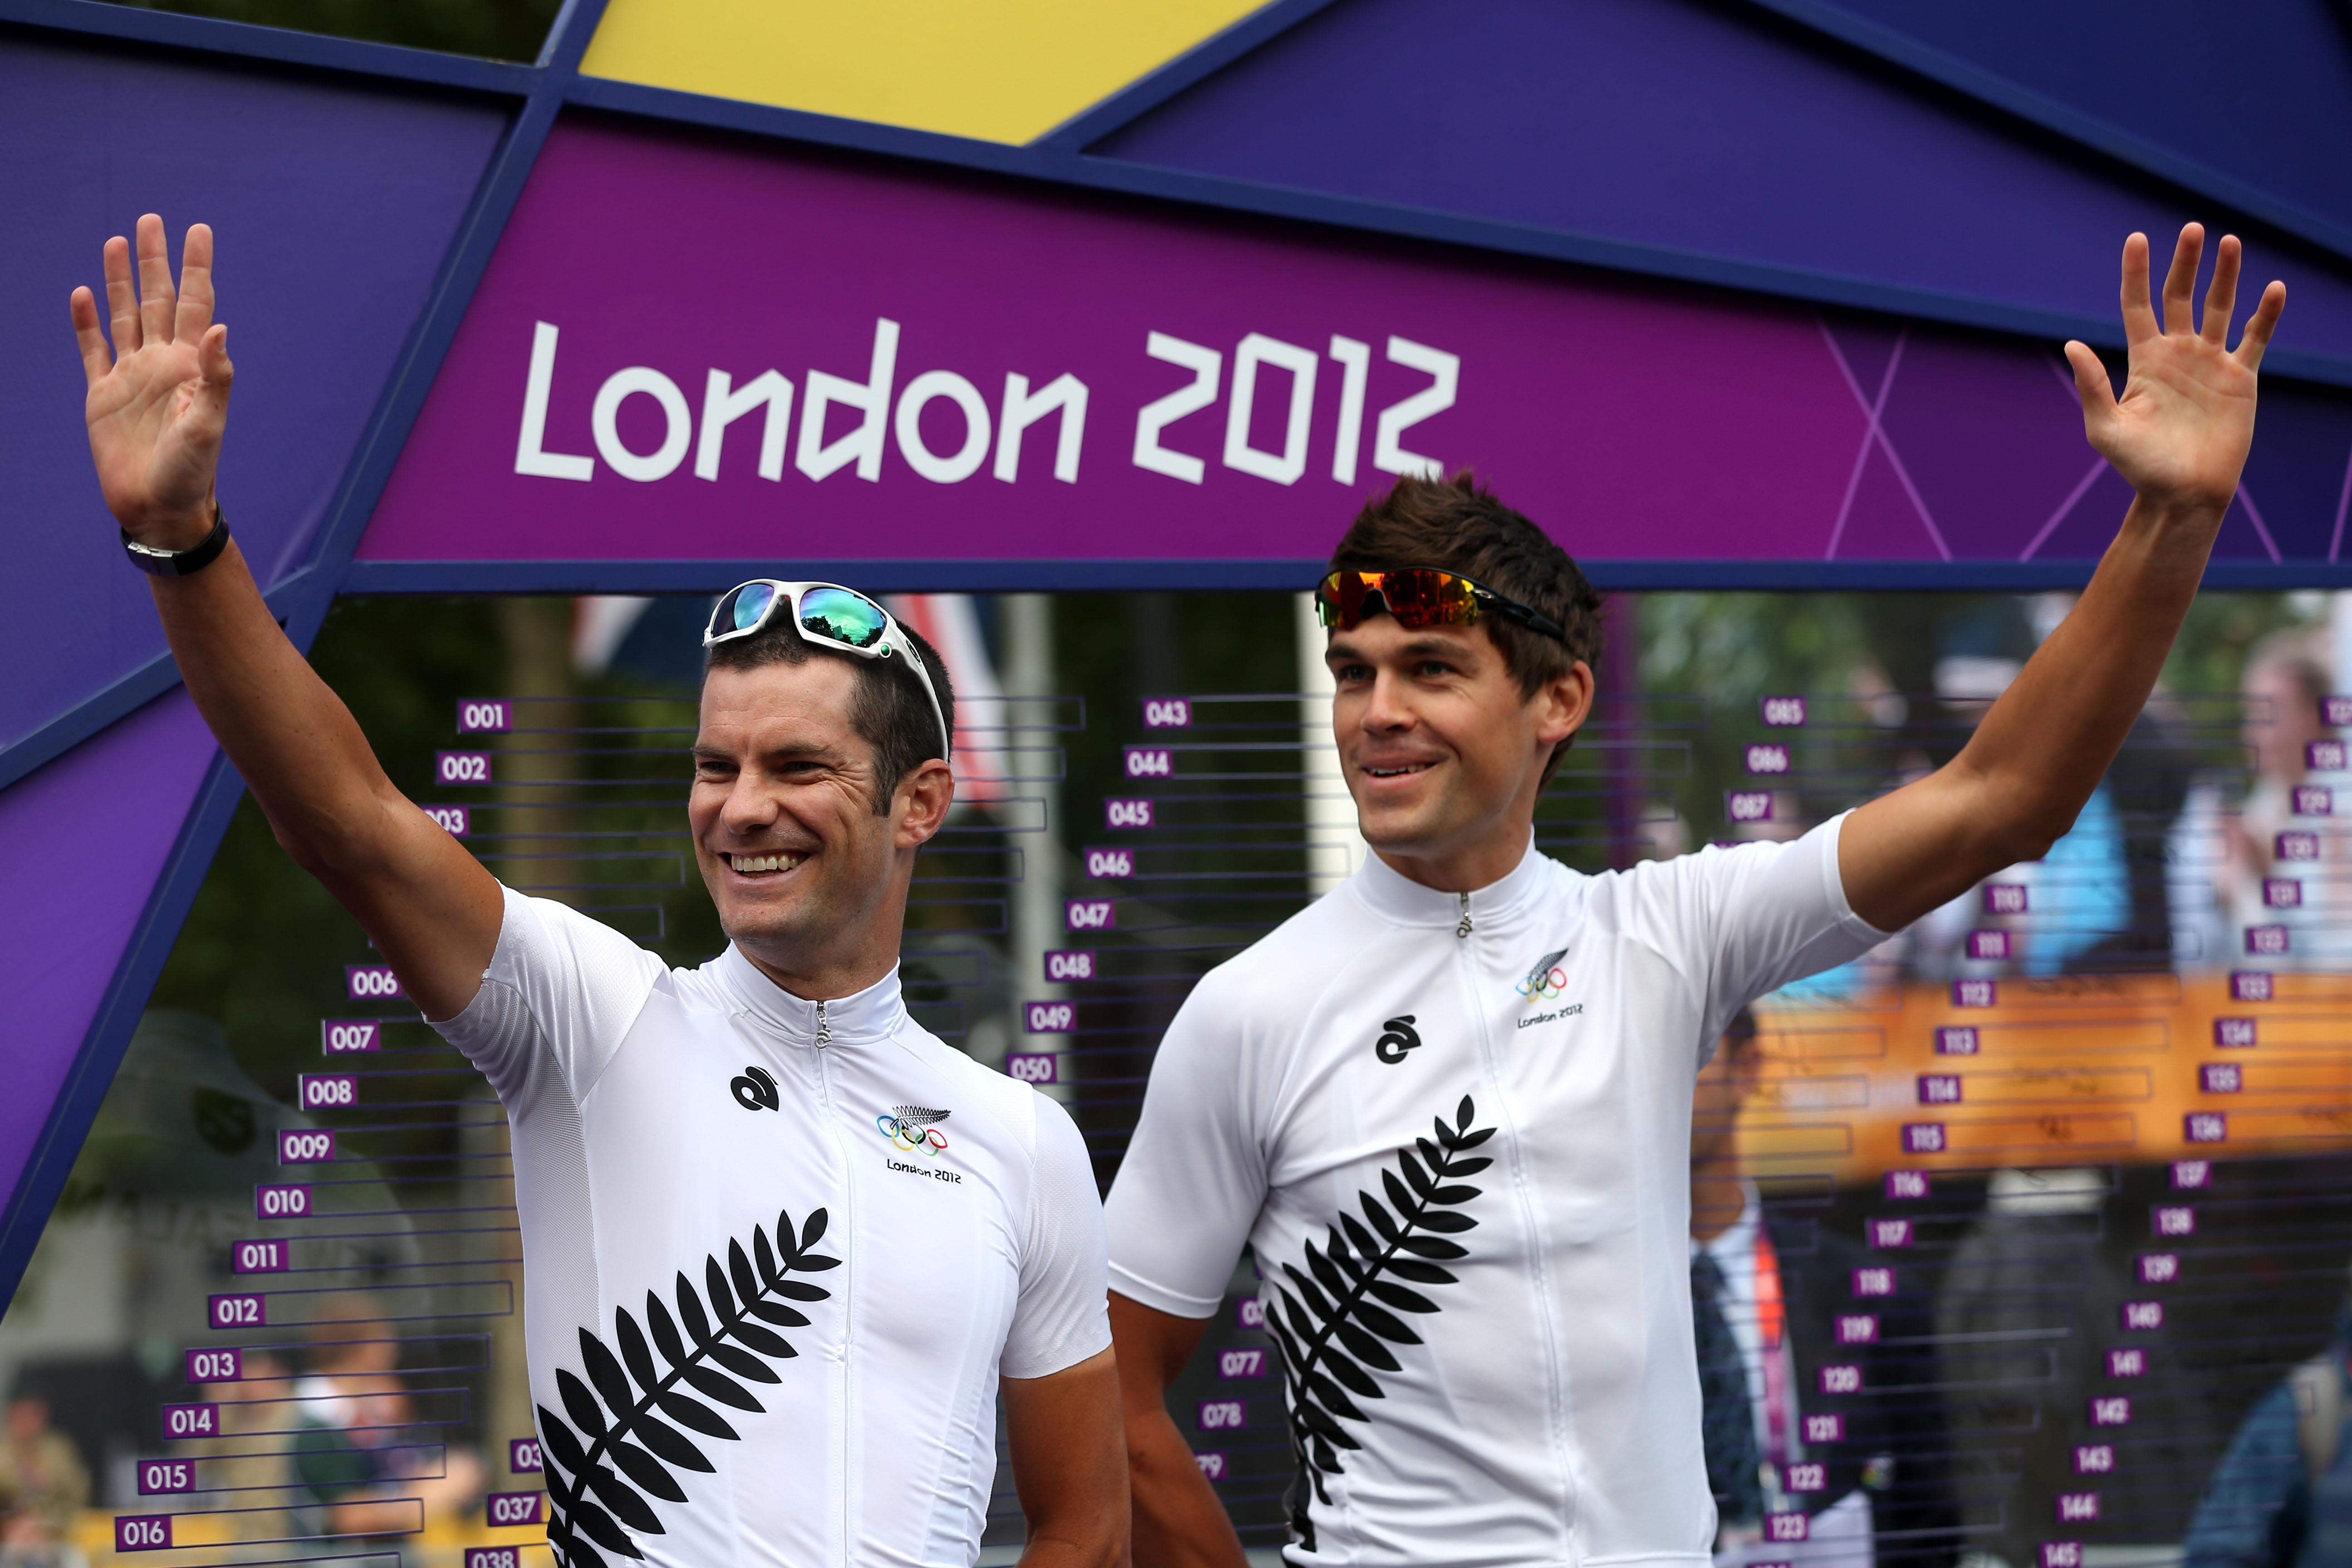 The New Zealander competed for his country at the 2012 Olympics in London